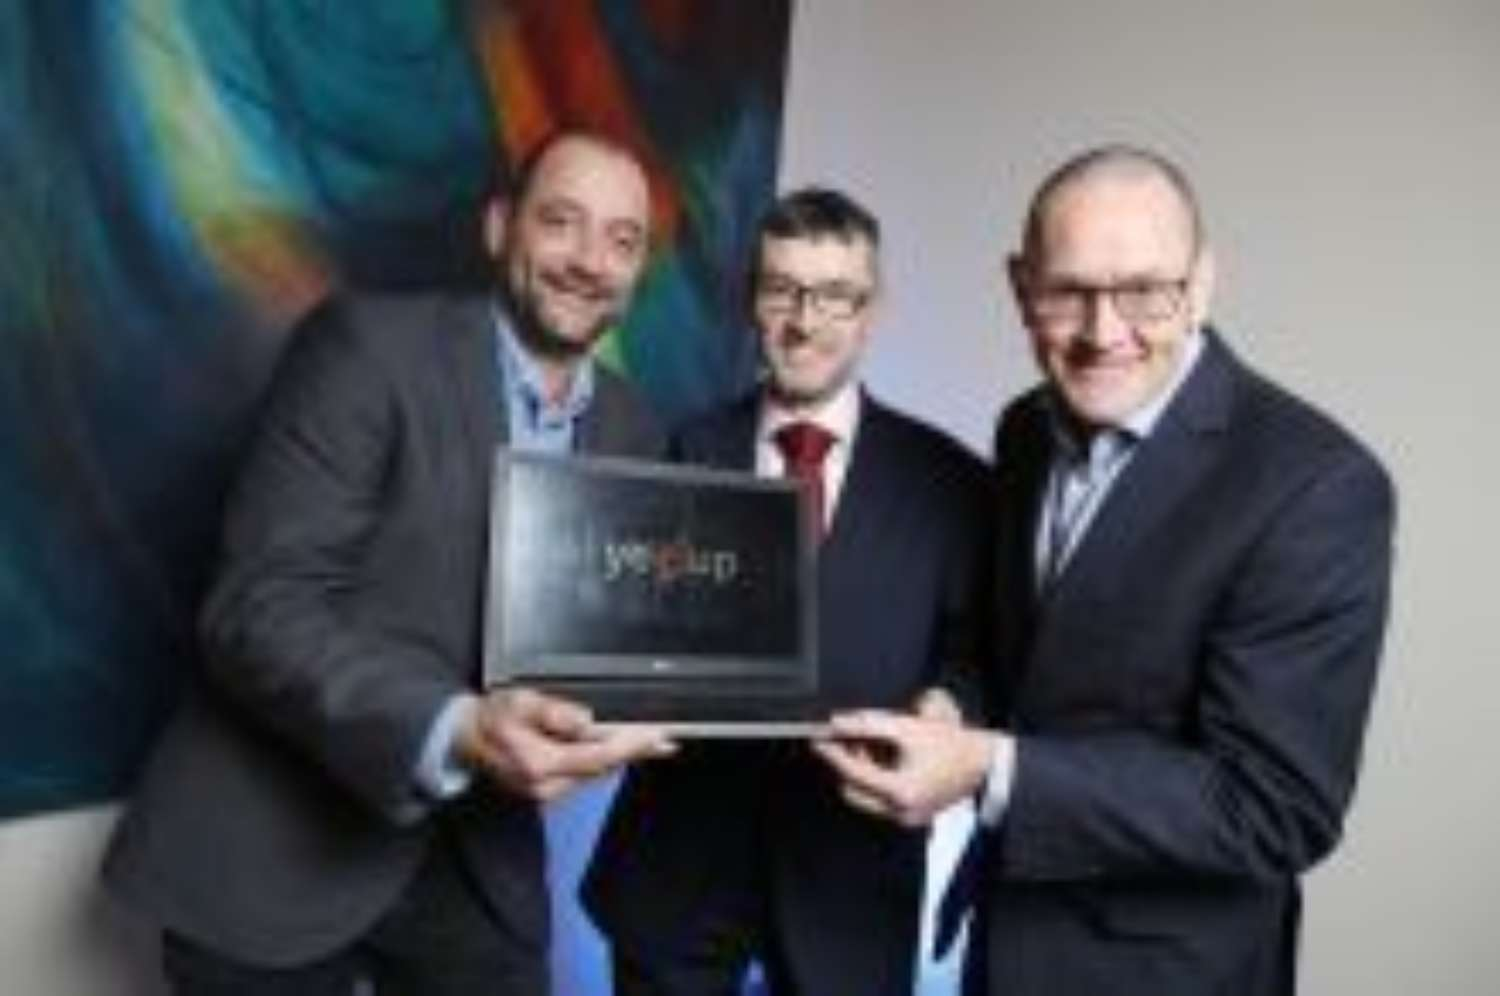 Belfast Companies announced as regional winners in Seedcorn competition